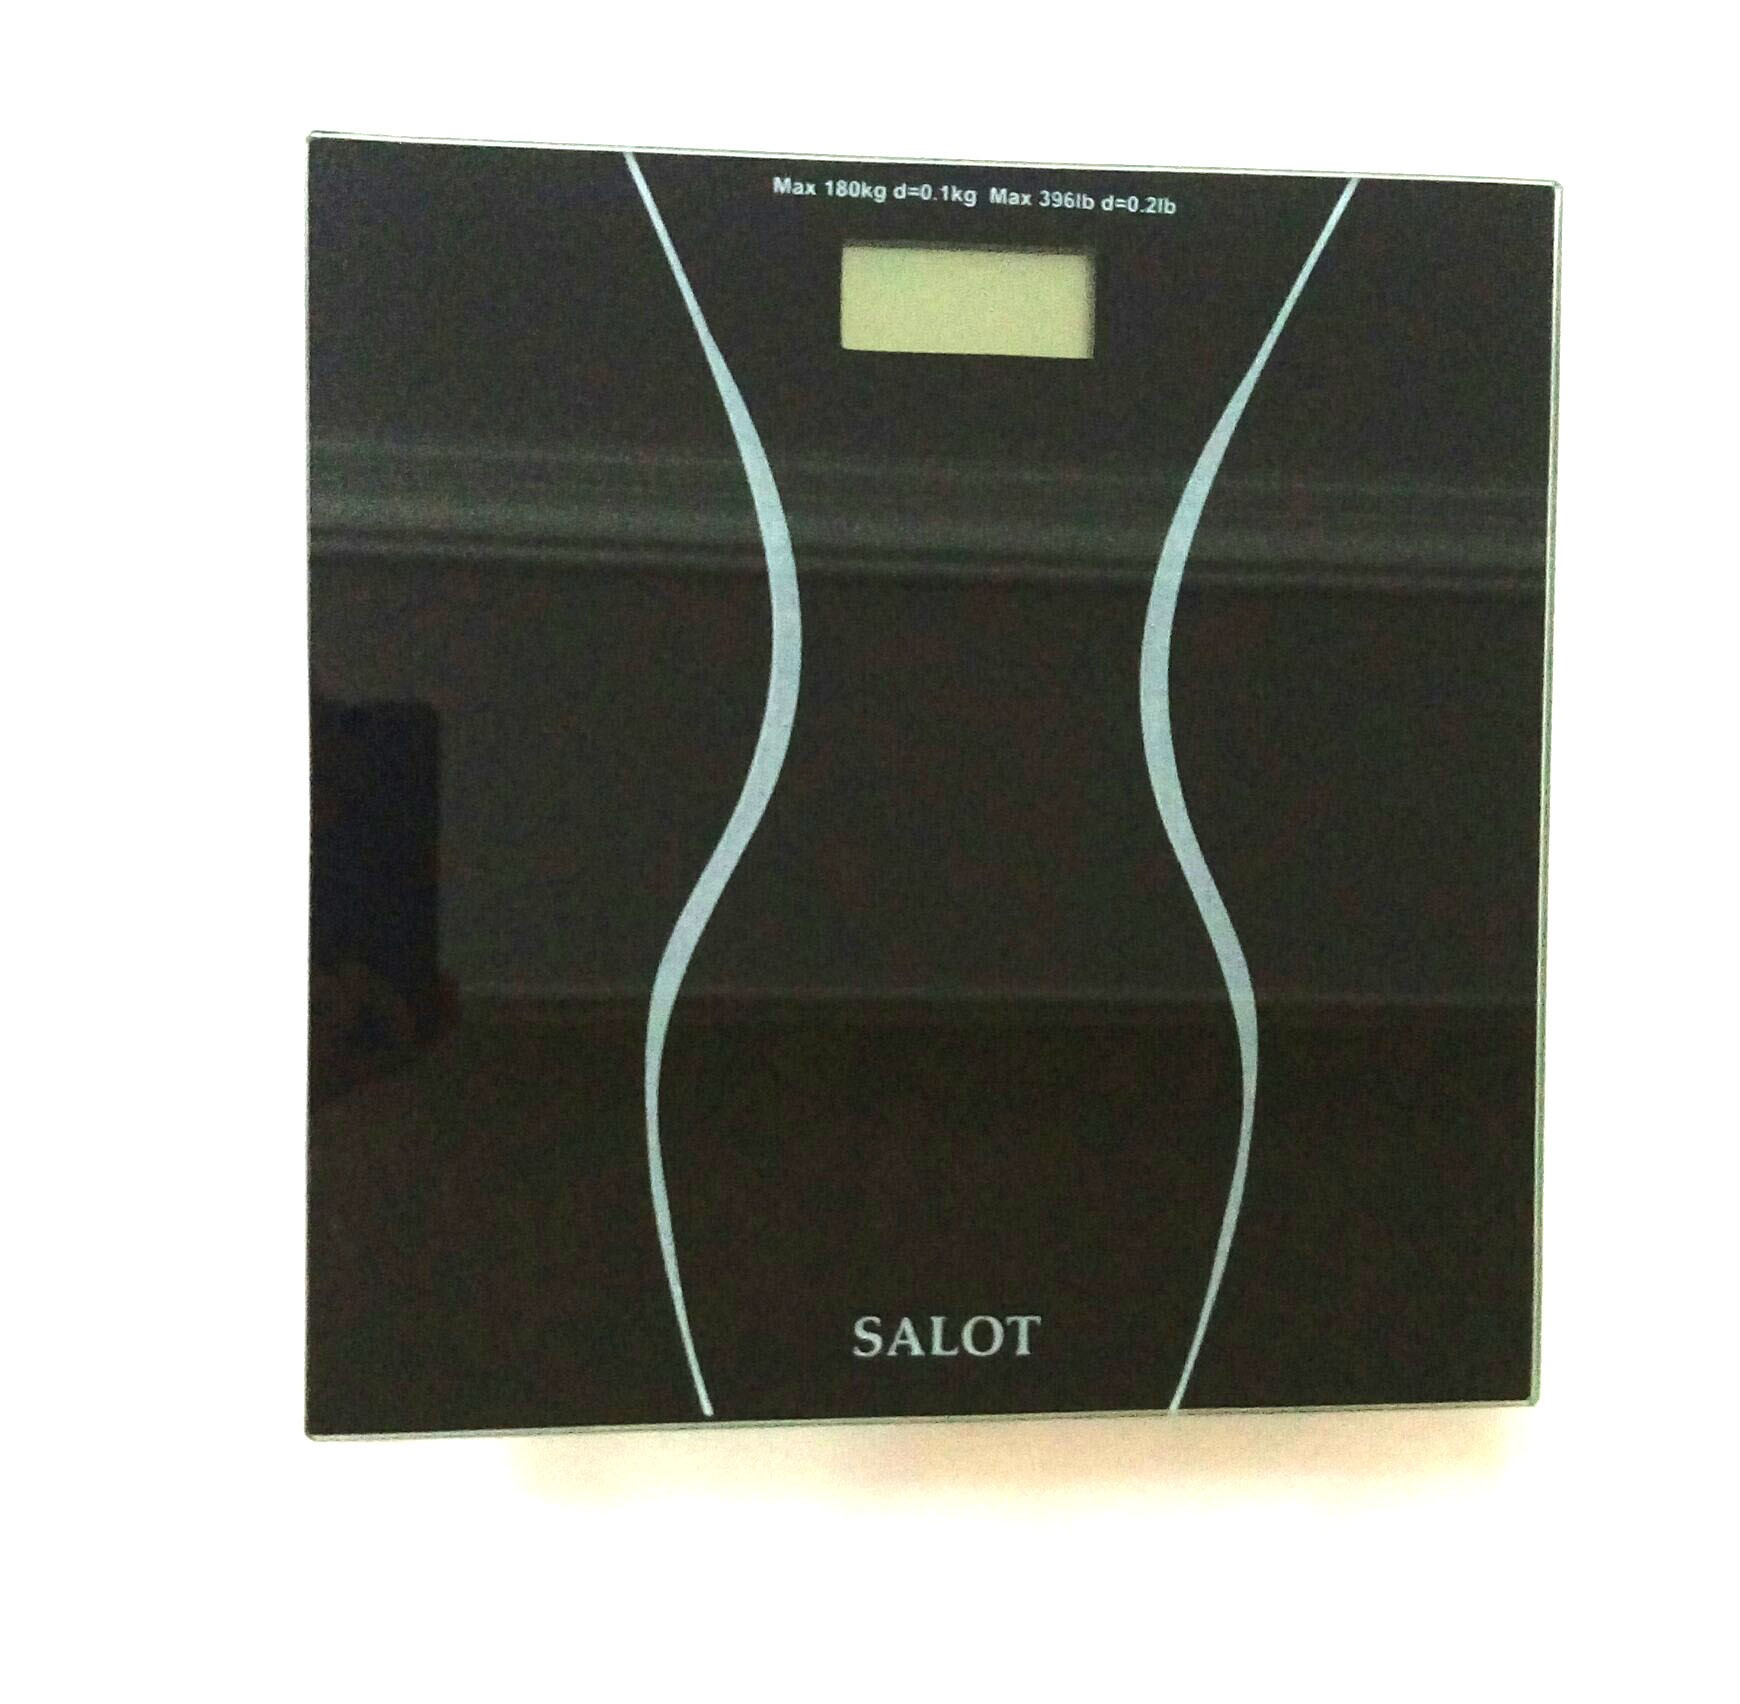 image number  1 products  Weightlifting Balance